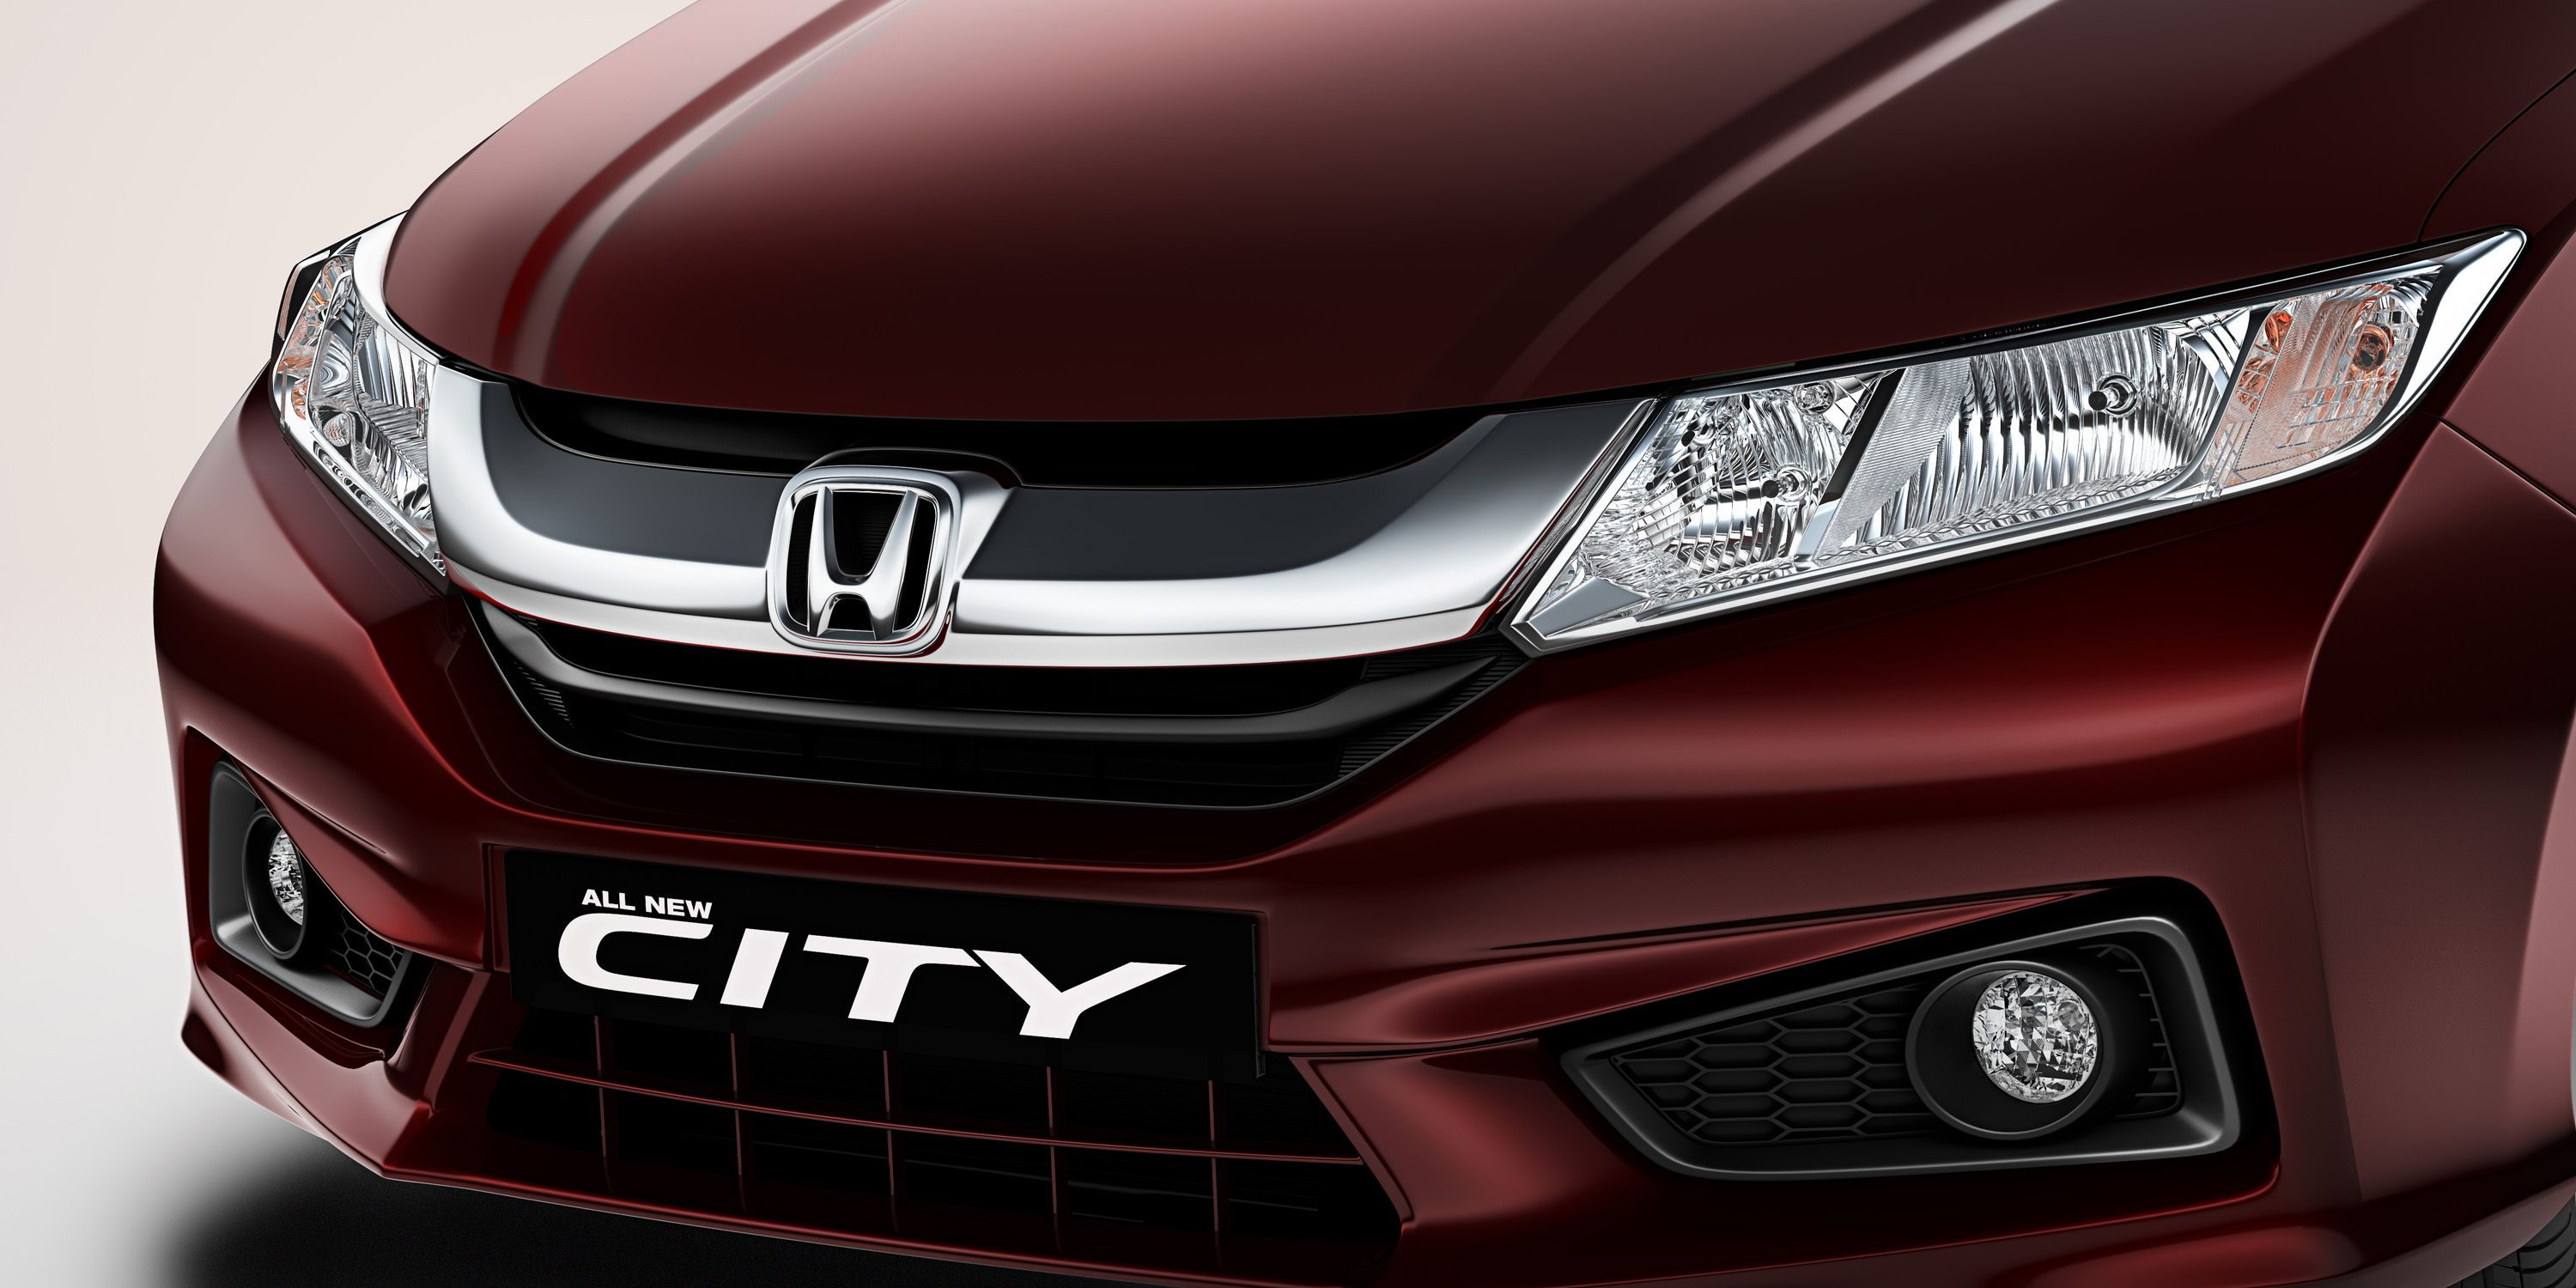 Certified Cars in Gurgaon Honda, Honda city, New honda